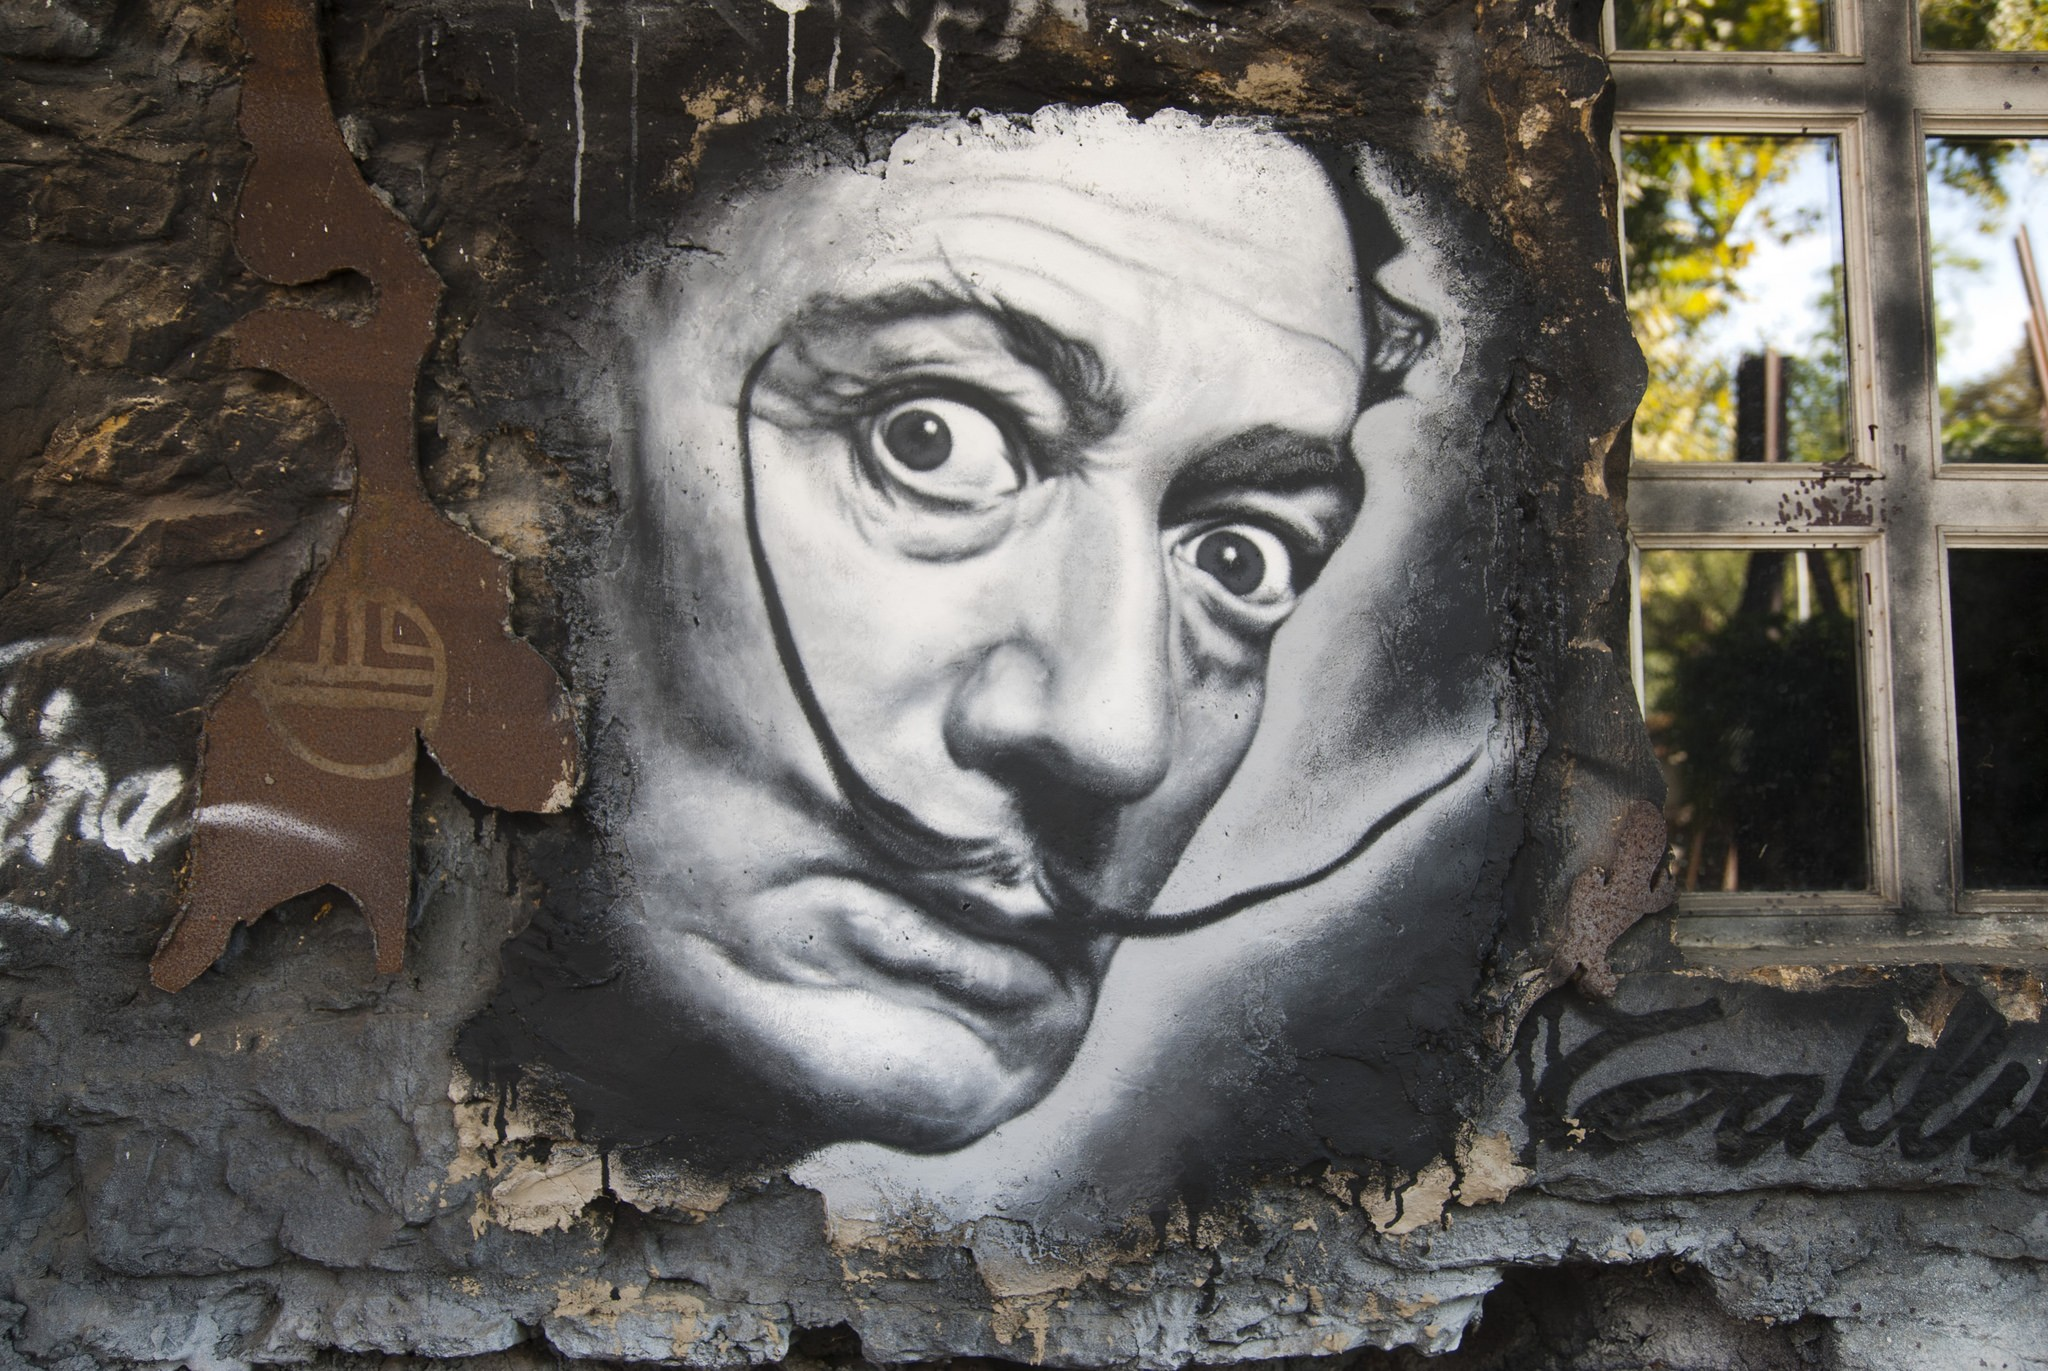 (Grafite com o rosto de Salvador Dalí. Foto: Flickr/Thierry Ehrmann/Creative Commons)